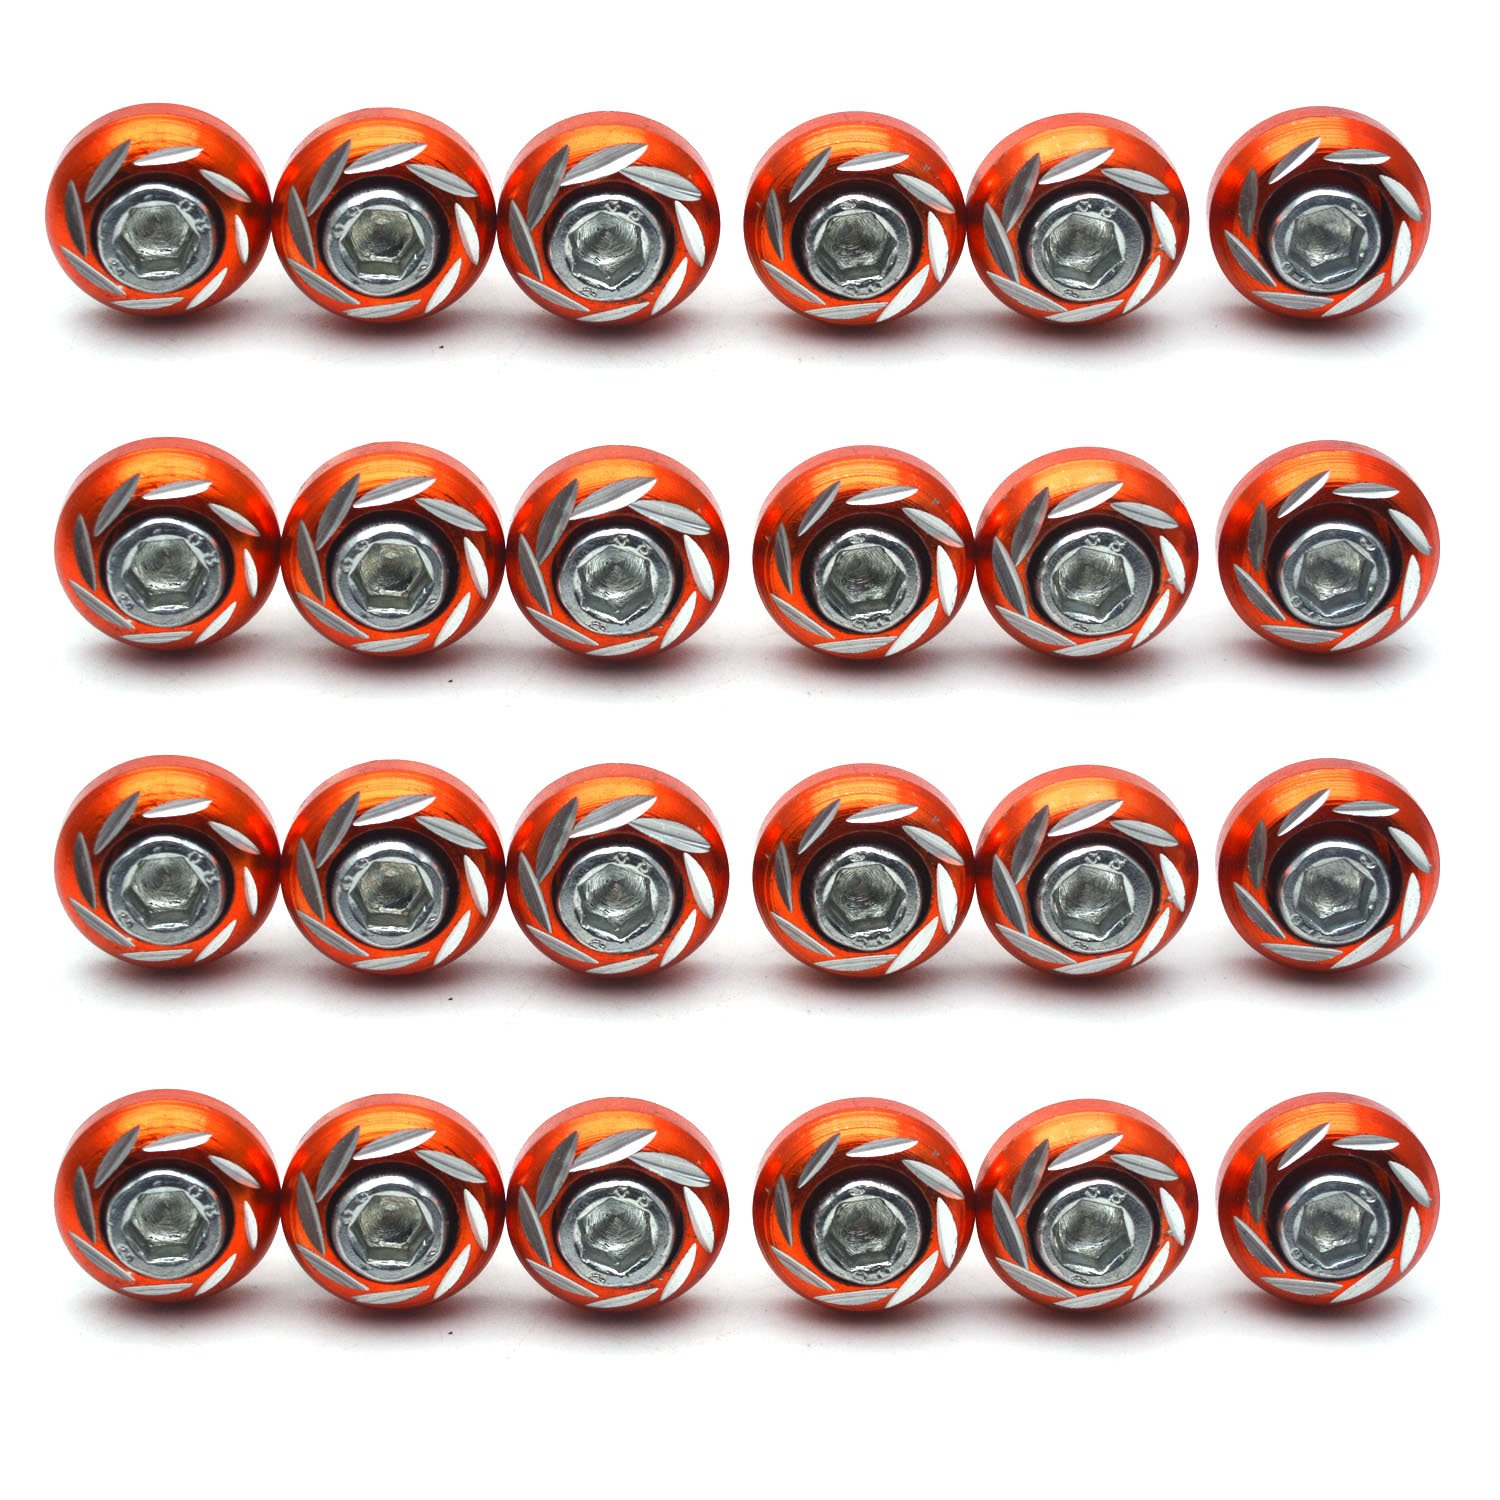 24pcs Guangzhou Openfind Electronic Commerce CO LTD Antrader Universal M6 Thread Decorative License Plate Frame Bolts Screws Aluminum Alloy for Car Motorcycle Orange